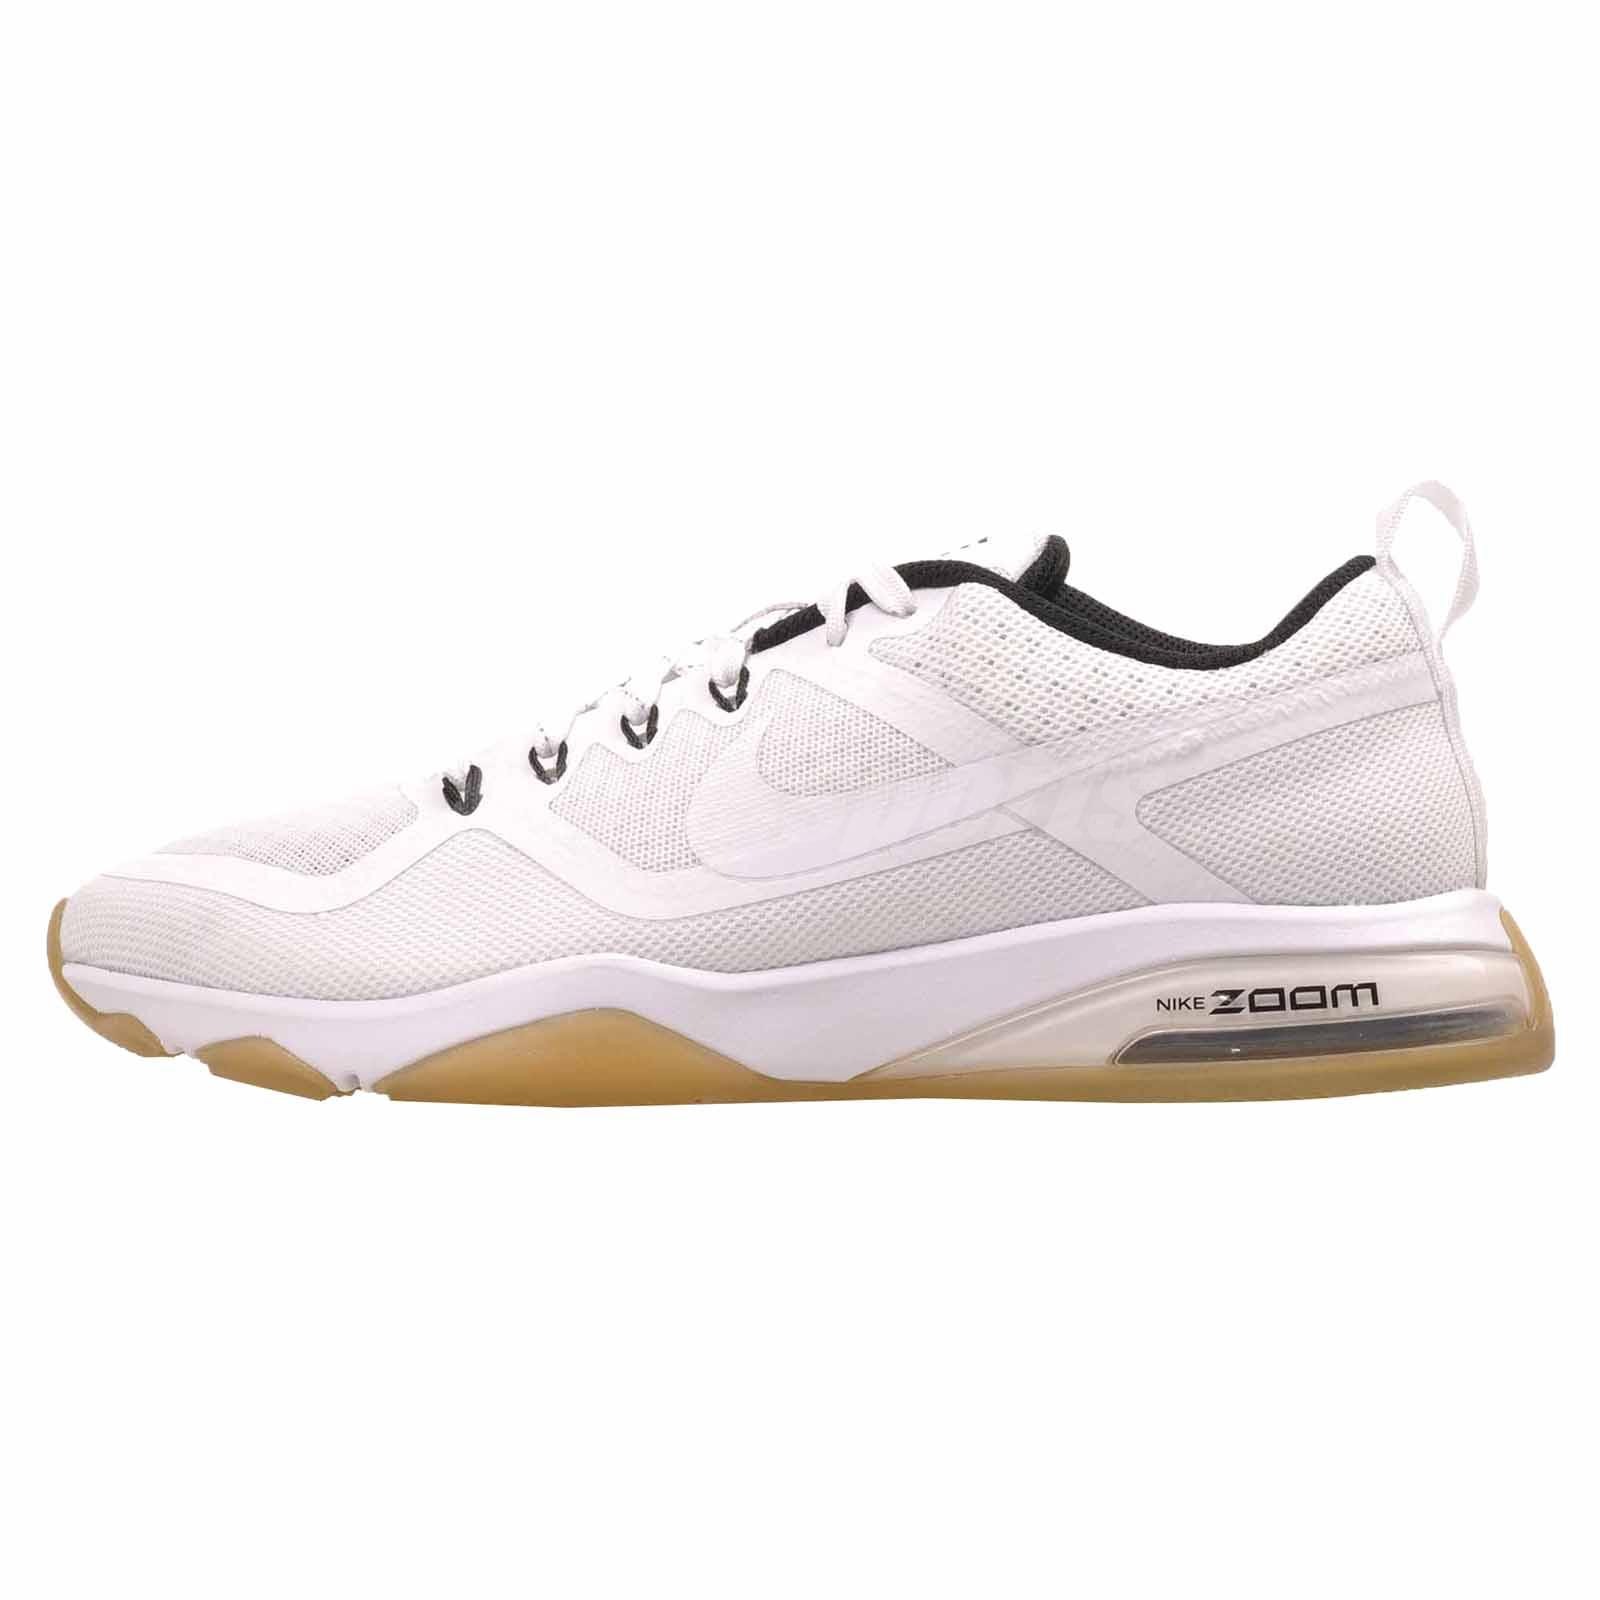 0b62c40f1bf1 Details about Nike Wmns Air Zoom Fitness Cross Training Womens Shoes White  Black 904645-101